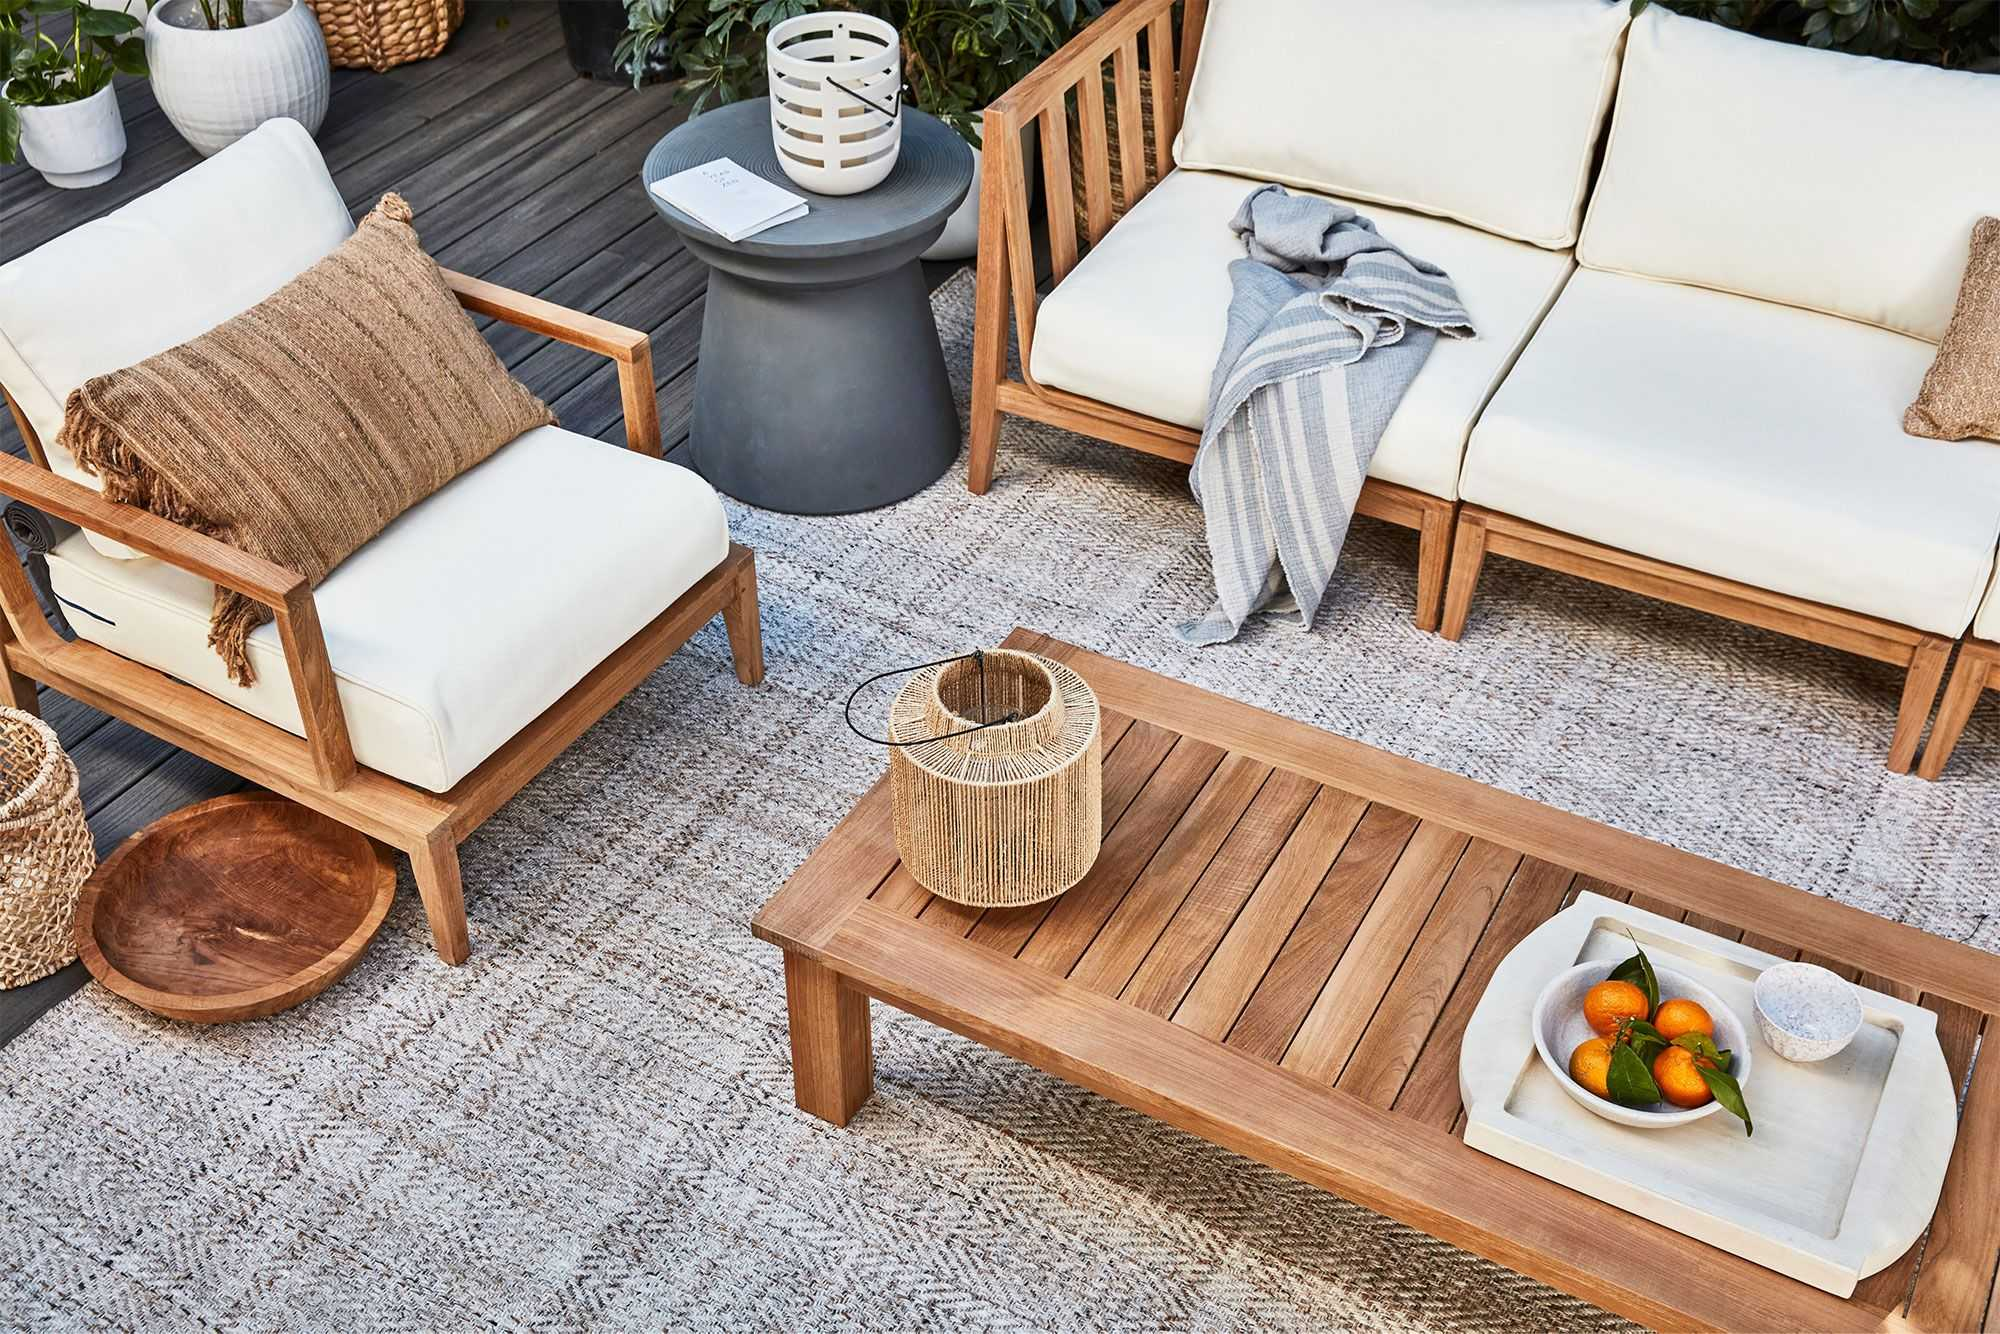 Perfectly styled patio table with fruit